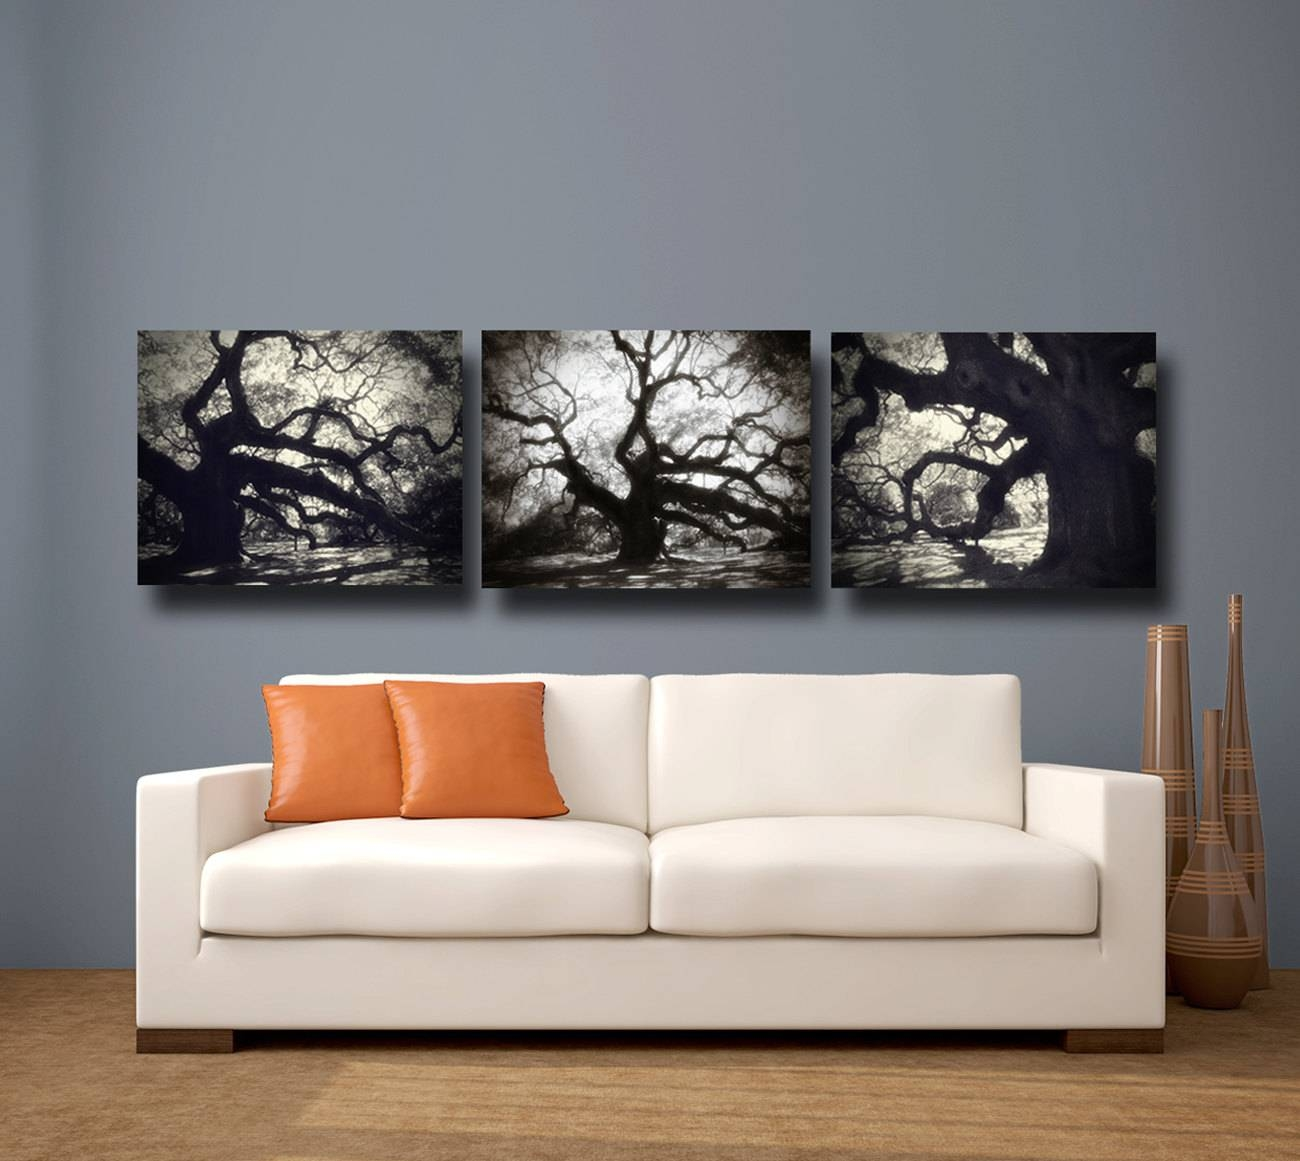 Wall Art Designs: Canvas Wall Art Leather Material Black White Intended For 2017 Big Cheap Wall Art (View 5 of 20)